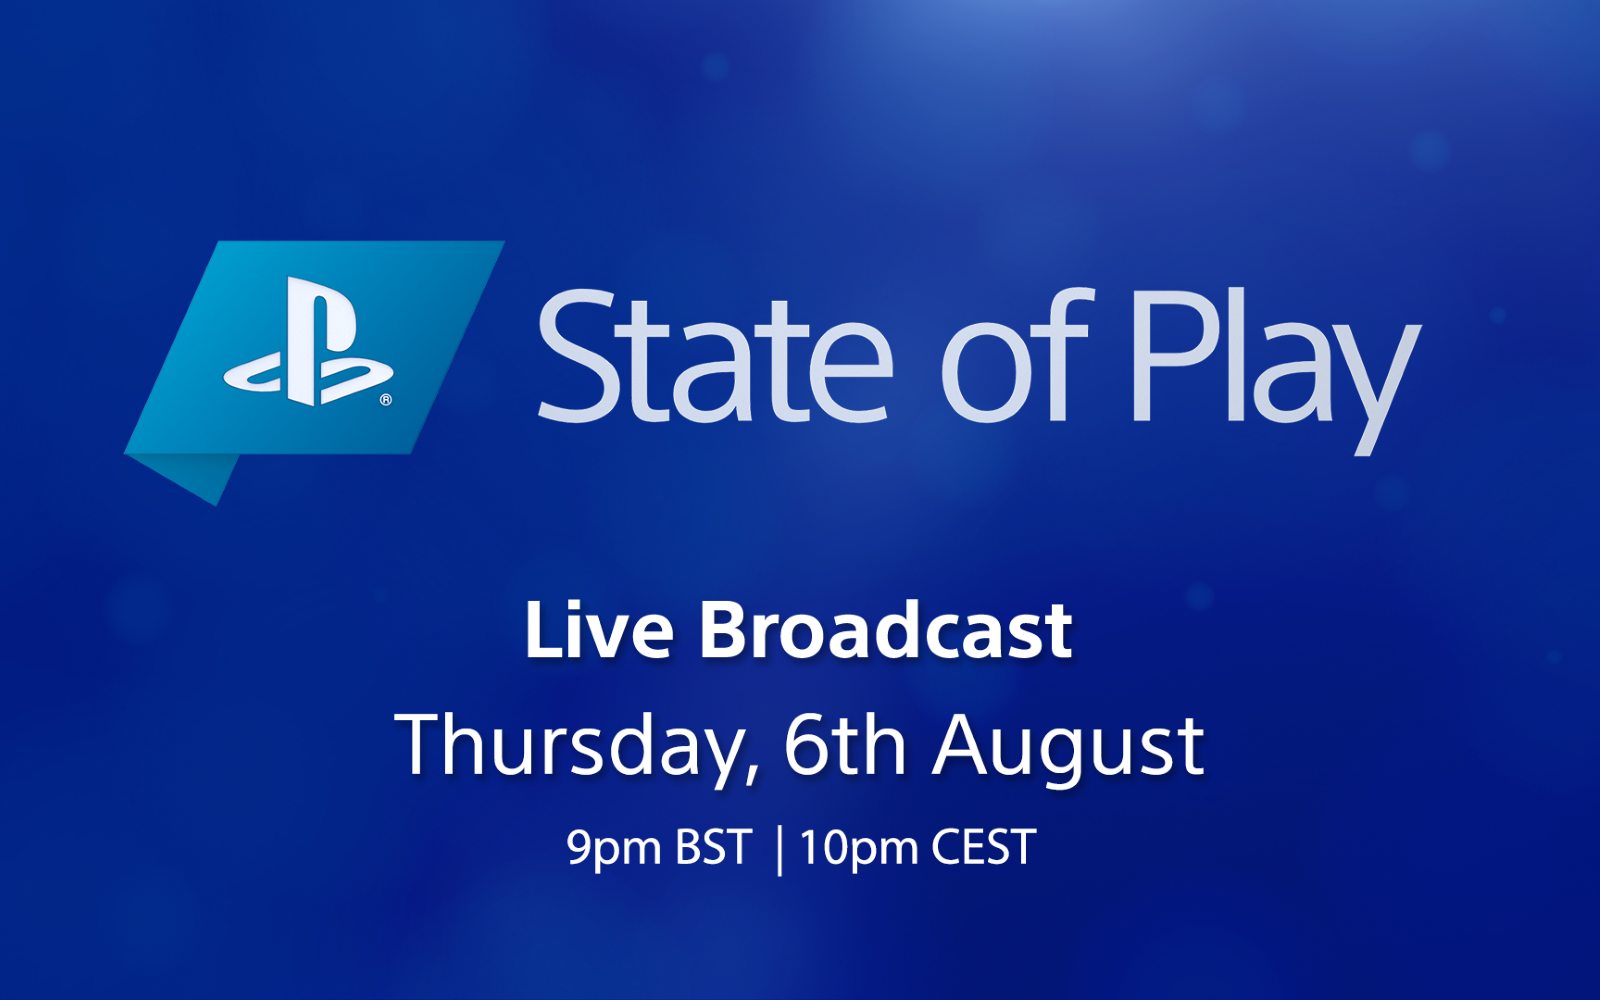 A New State Of Play Announced For This Week. It Will Focus On PS4 & PS VR Titles